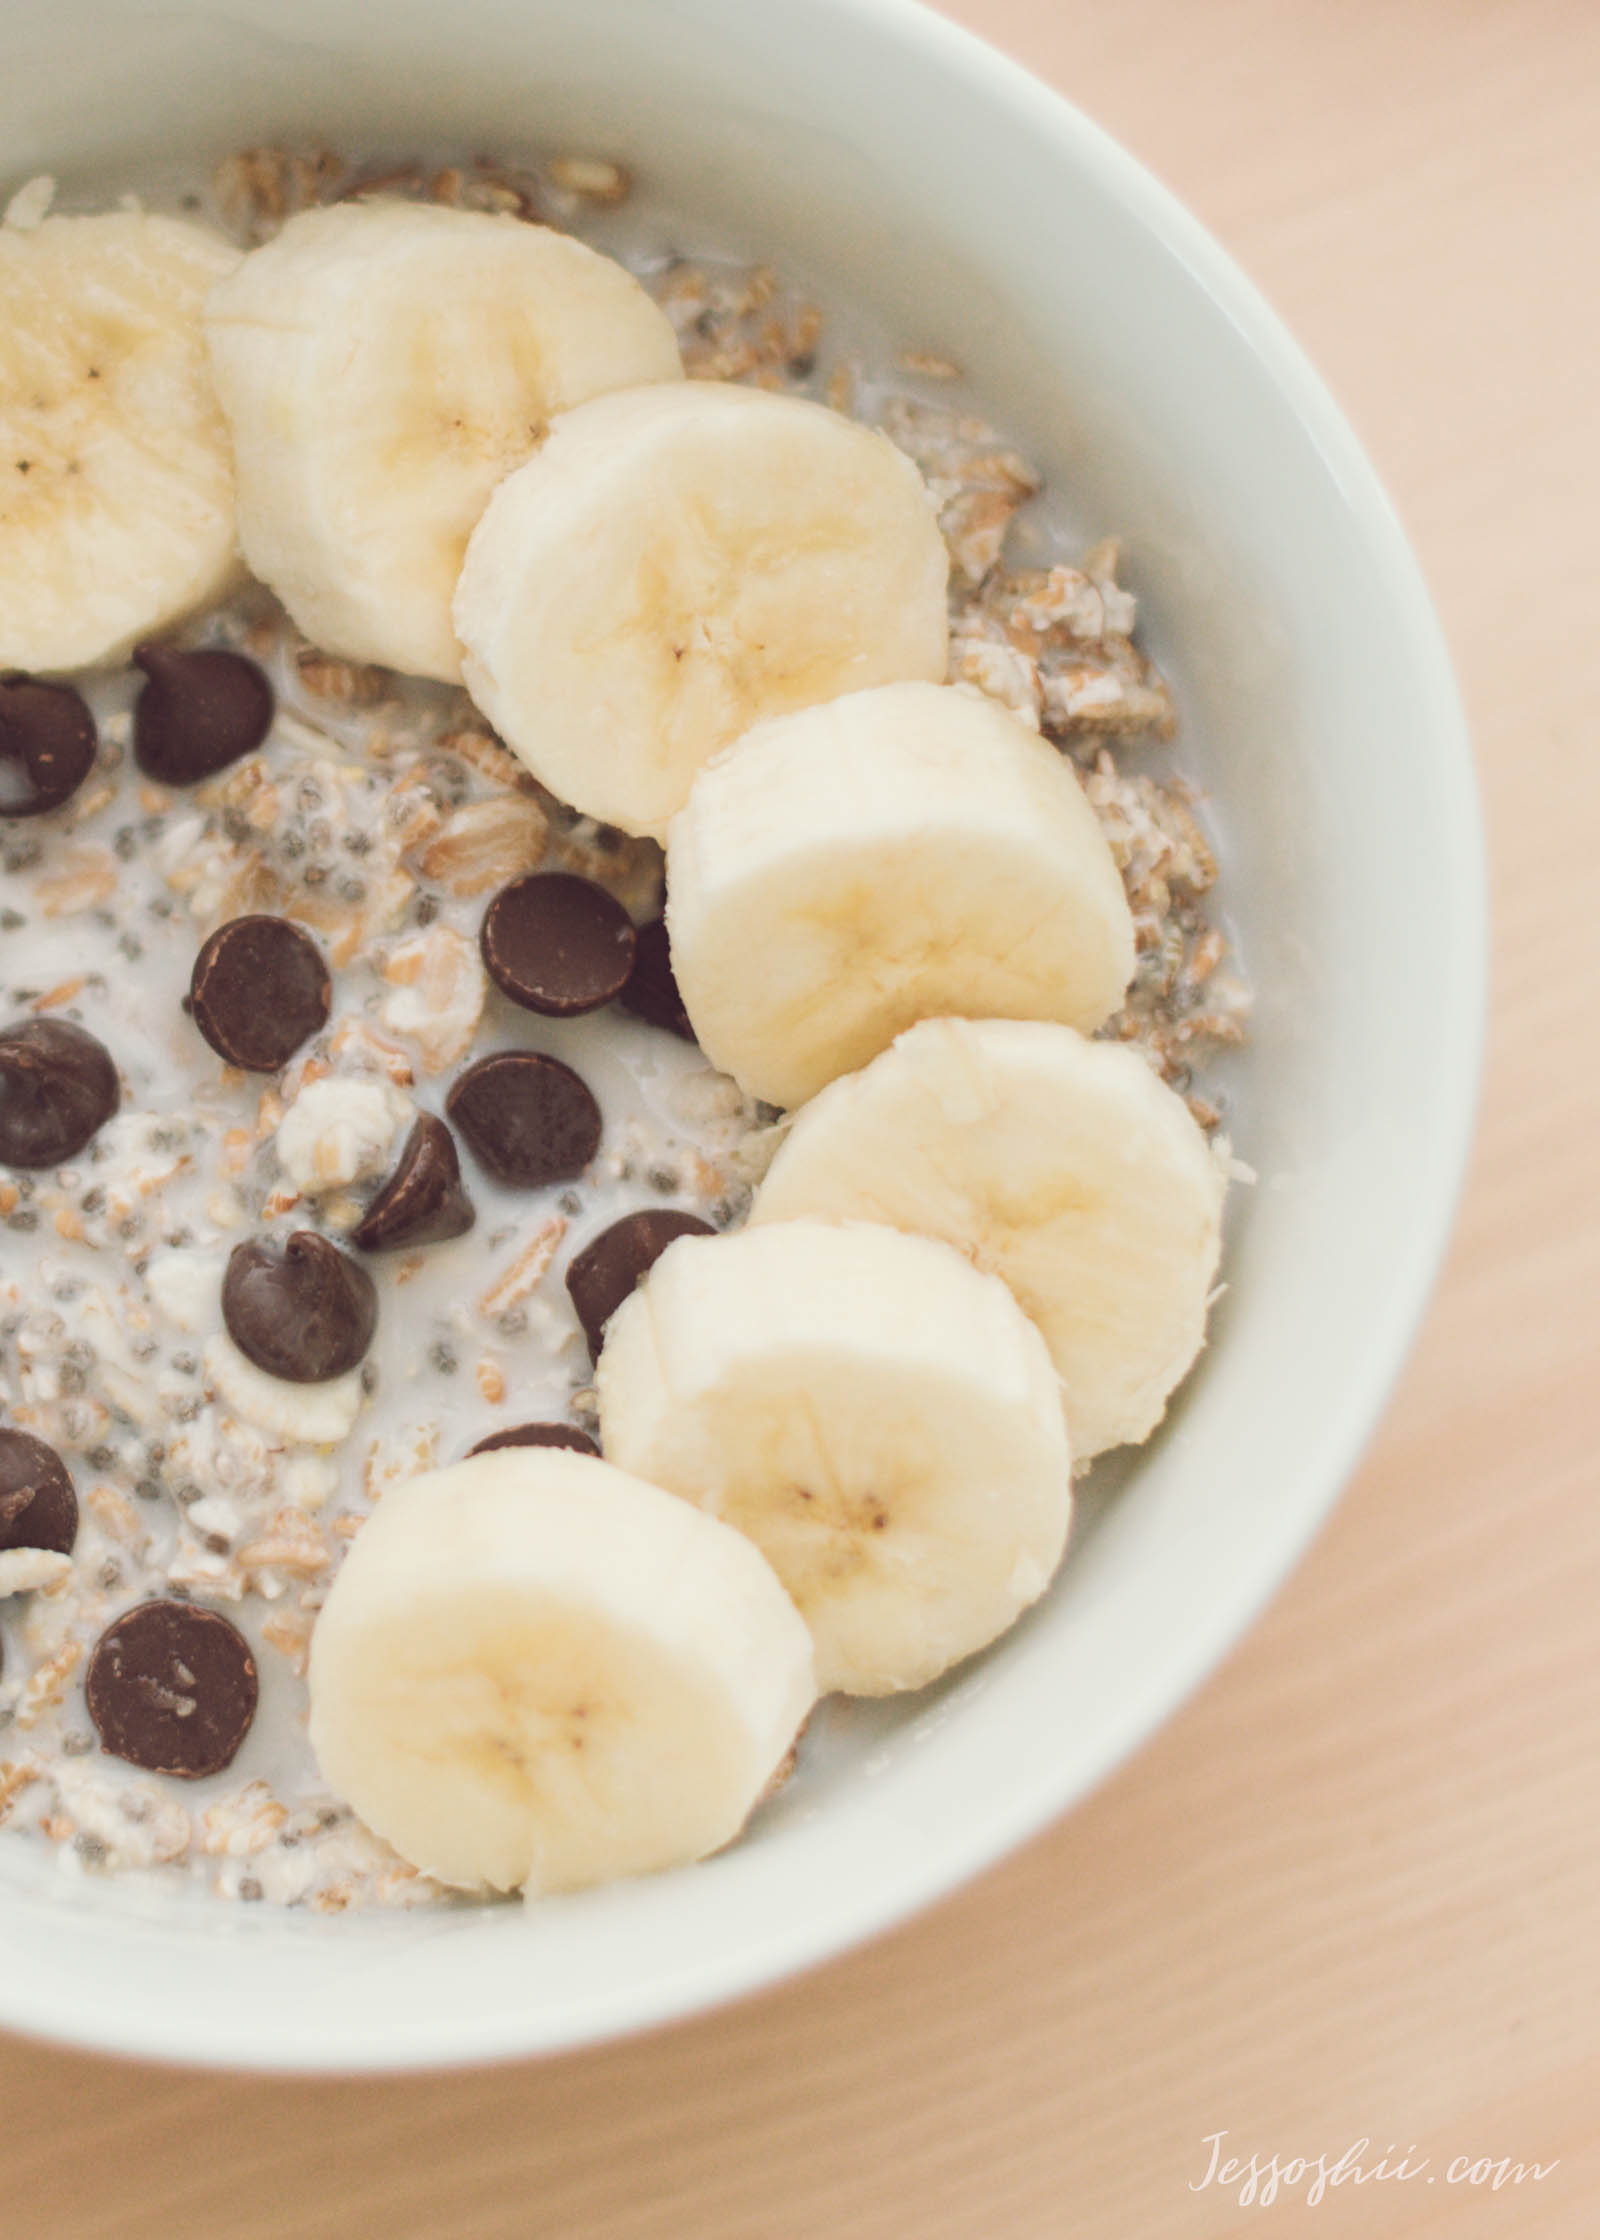 banana chocolate chips overnight oats recipe 9